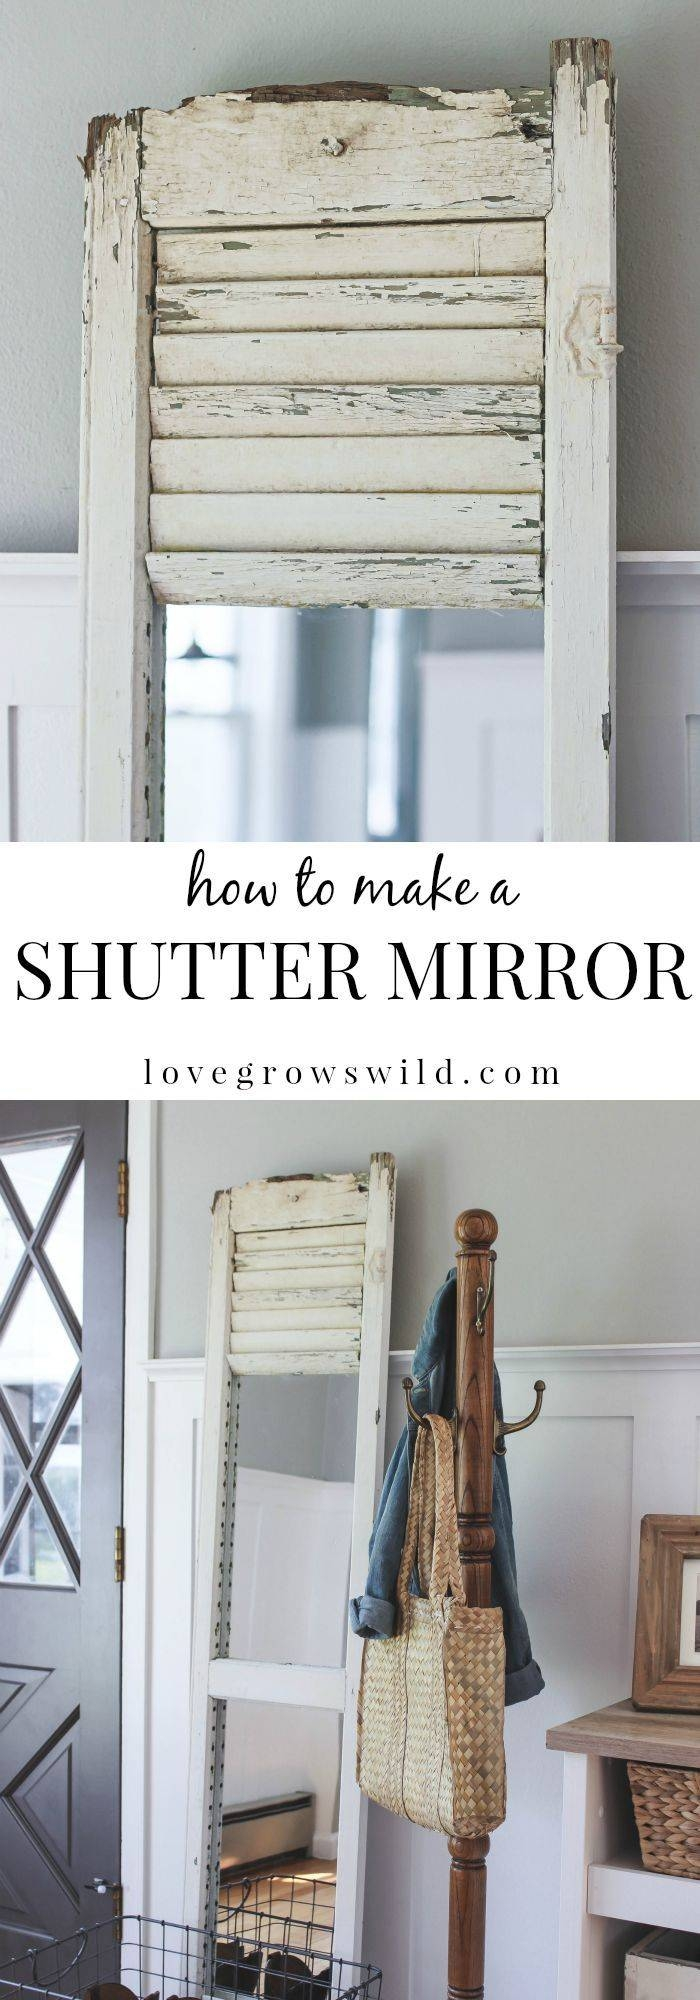 Best 25+ Shutter Ideas On Pinterest | Shutter Projects, Rustic within Window Shutter Mirrors (Image 4 of 15)